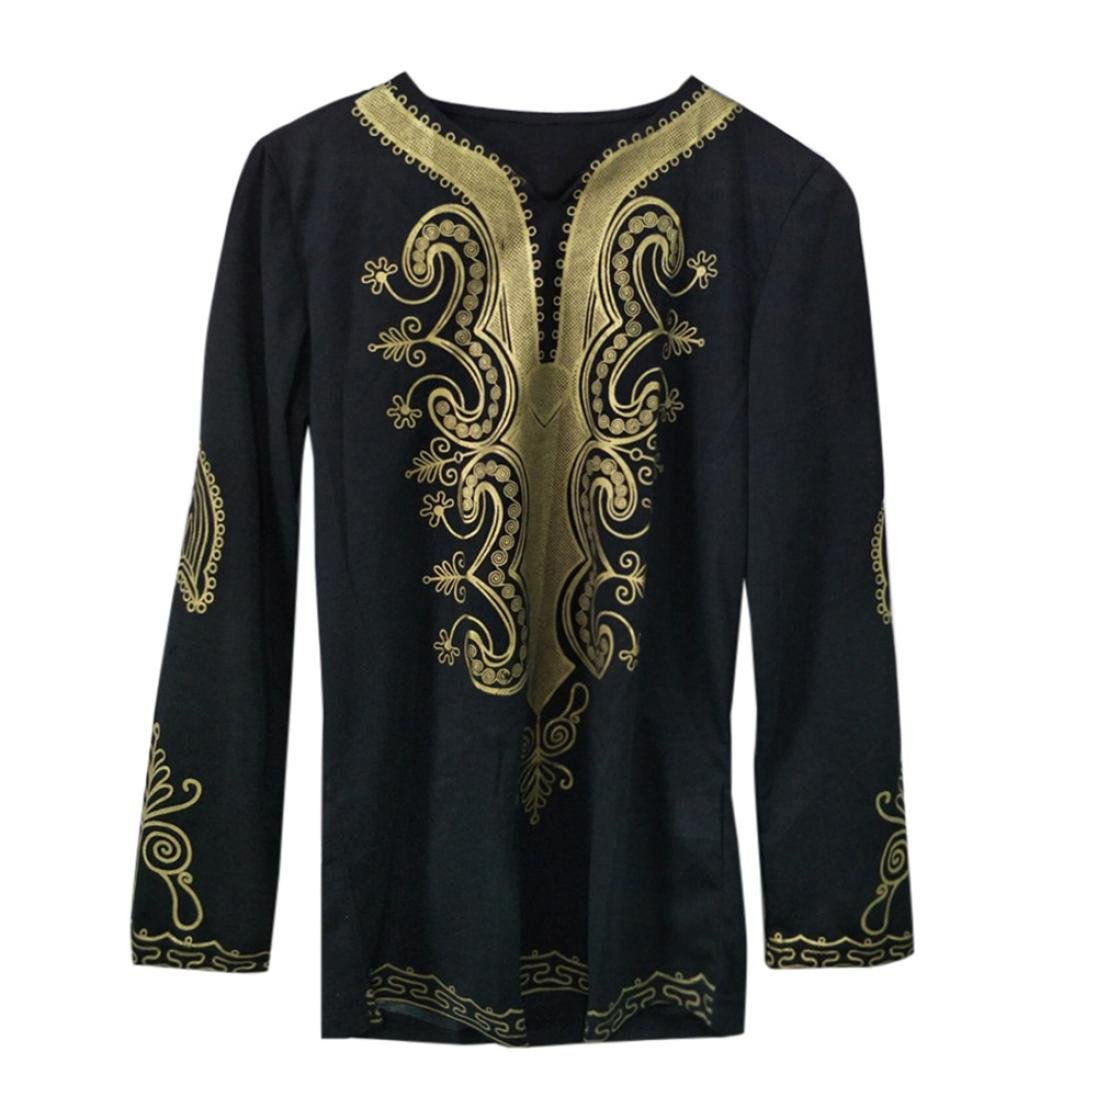 XUANOU Mens Hipster Hip Hop Style African Dashiki Graphic V-Collor Long Sleeve Top T-Shirt (XL, Black)